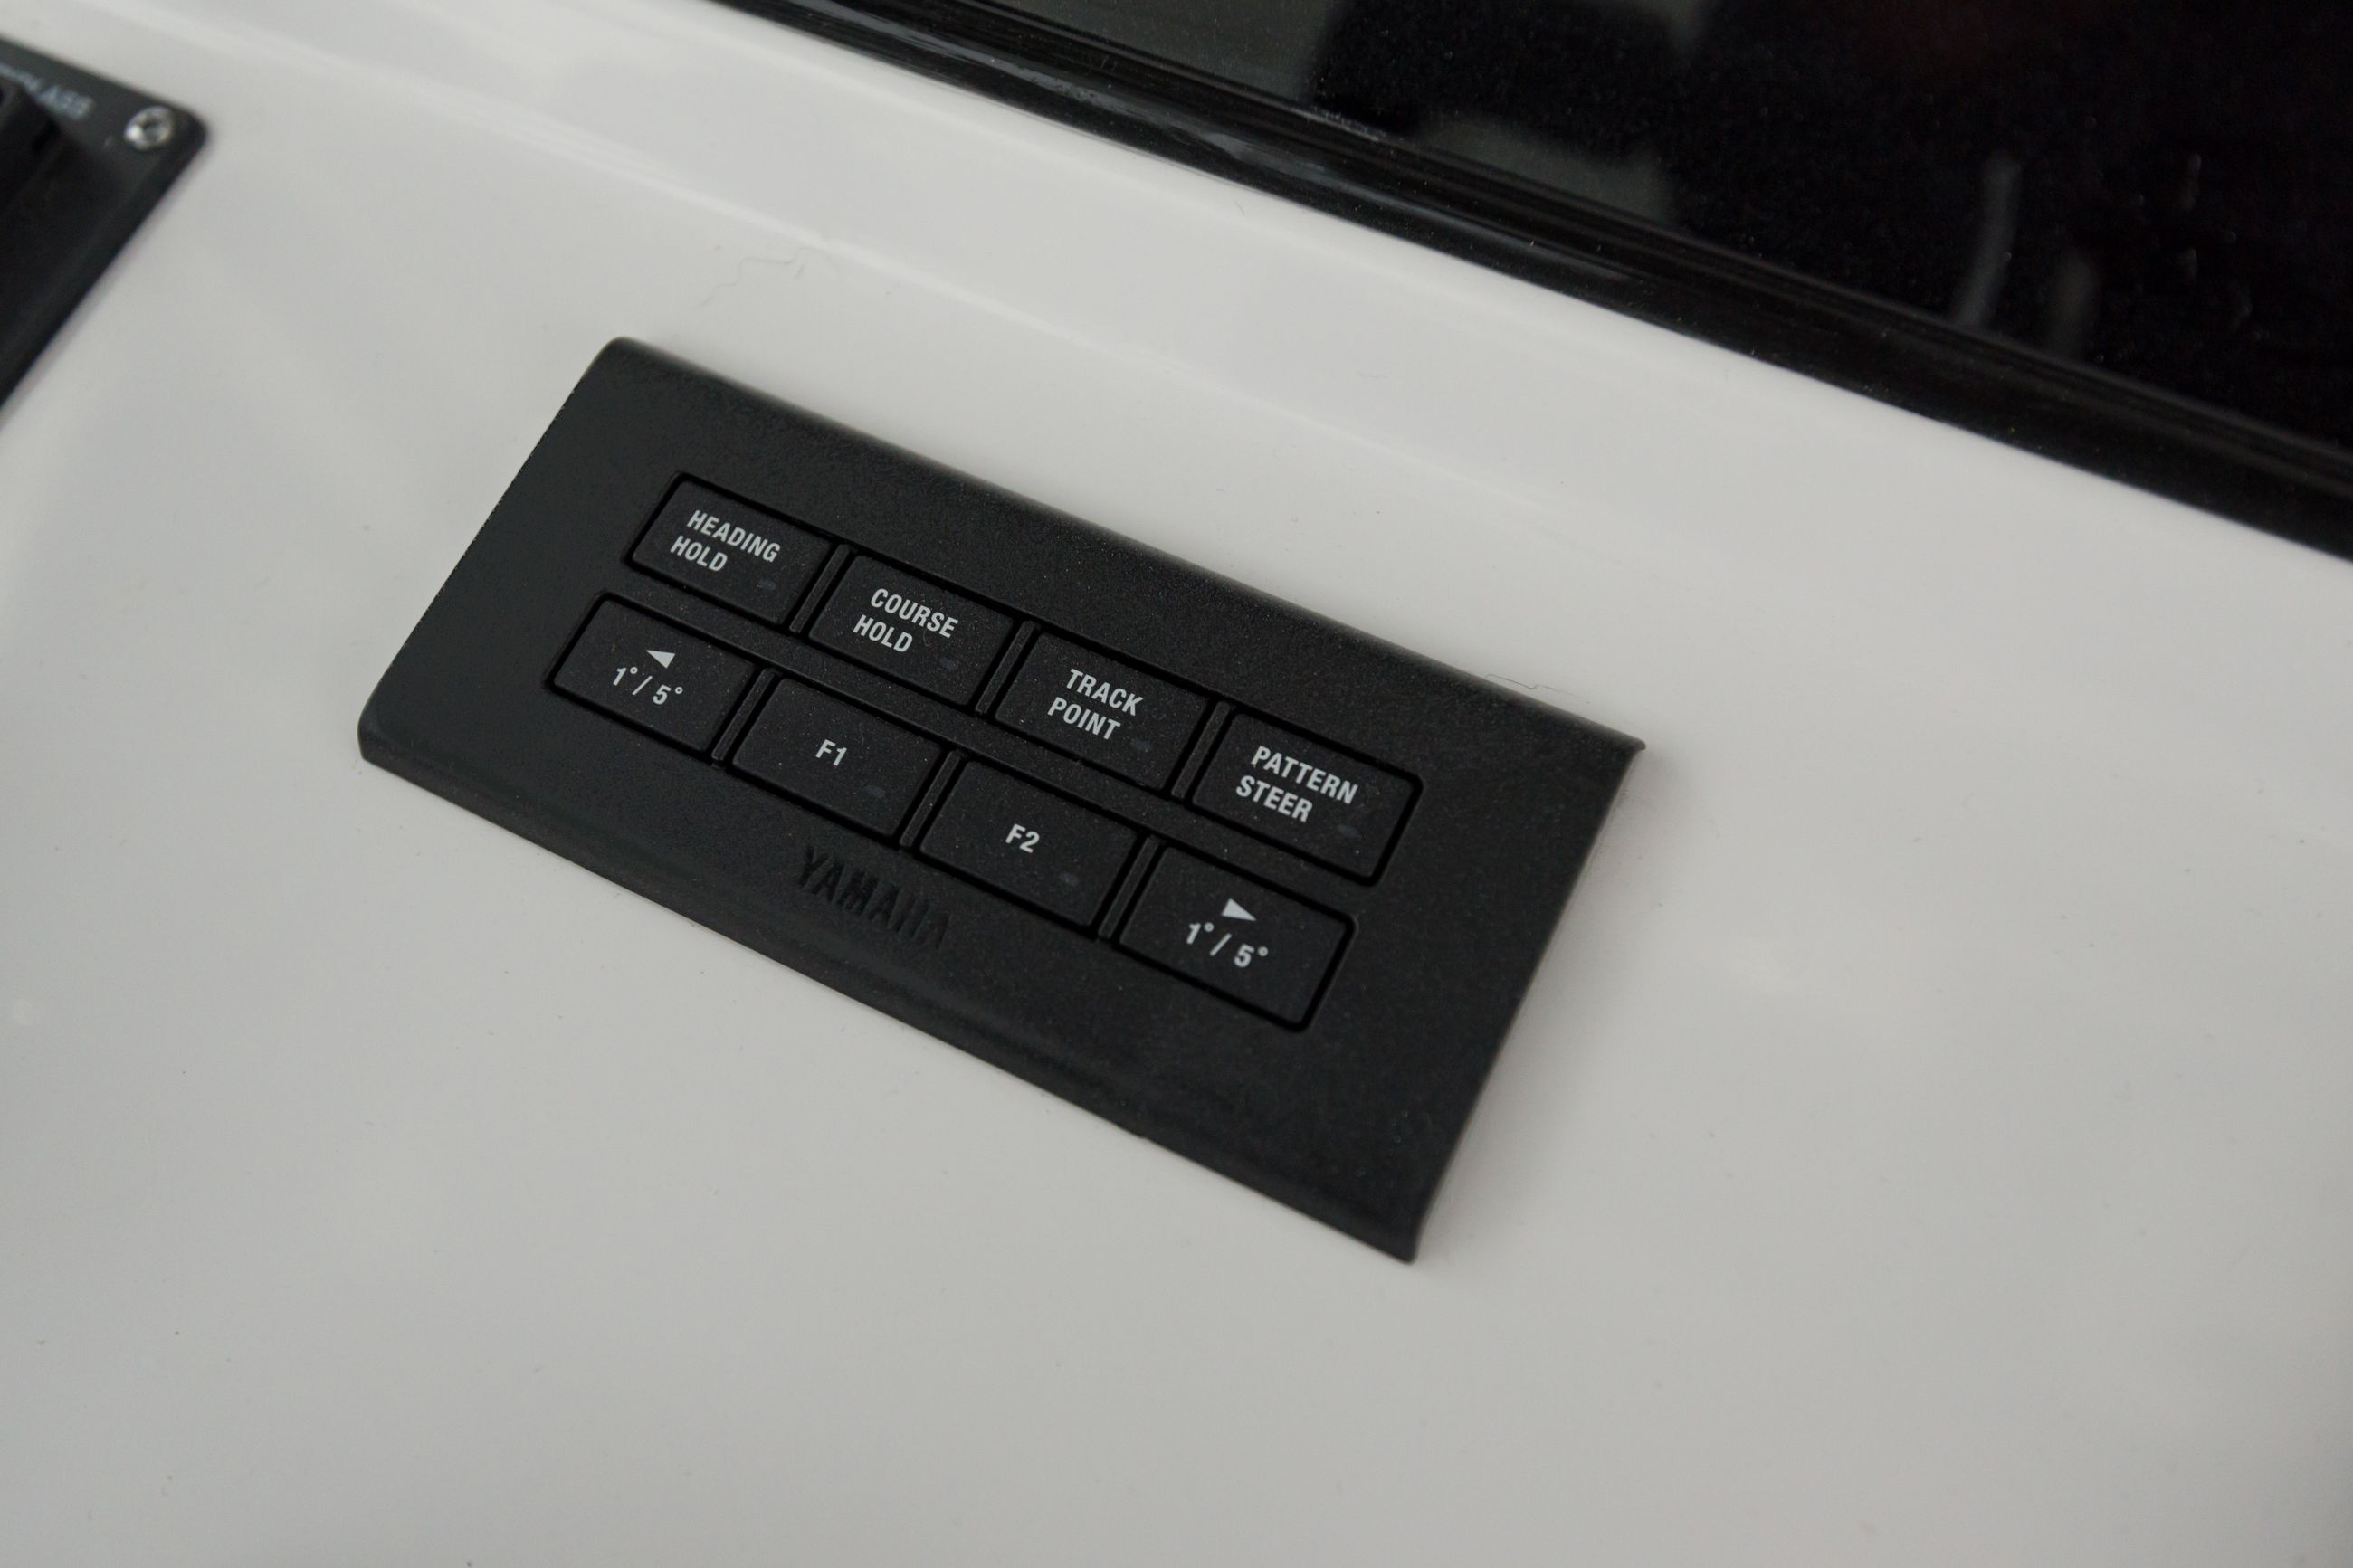 Detail image of Yamaha Auto Pilot (425HP Only)